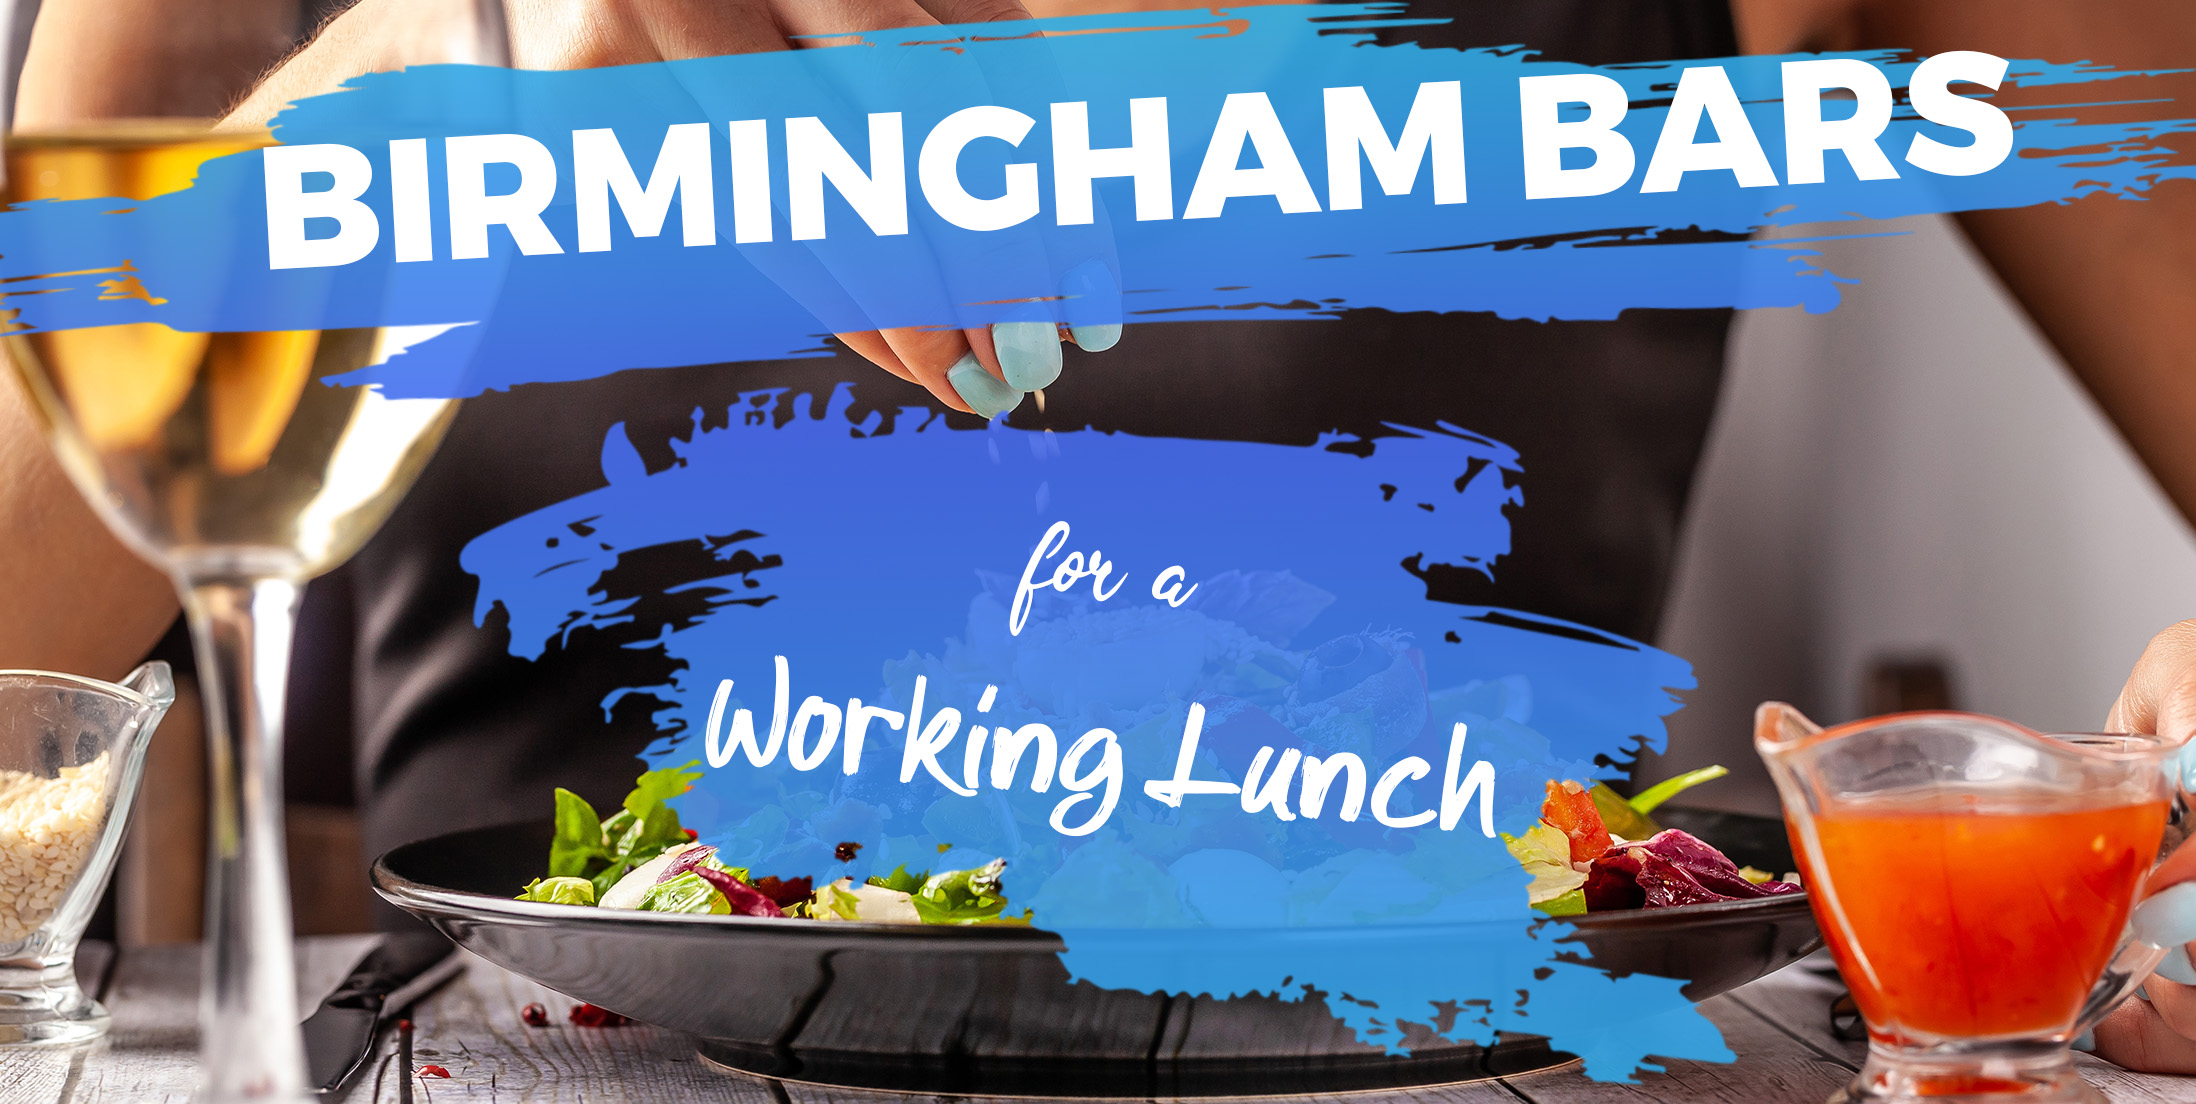 Birmingham Bars for a Working Lunch